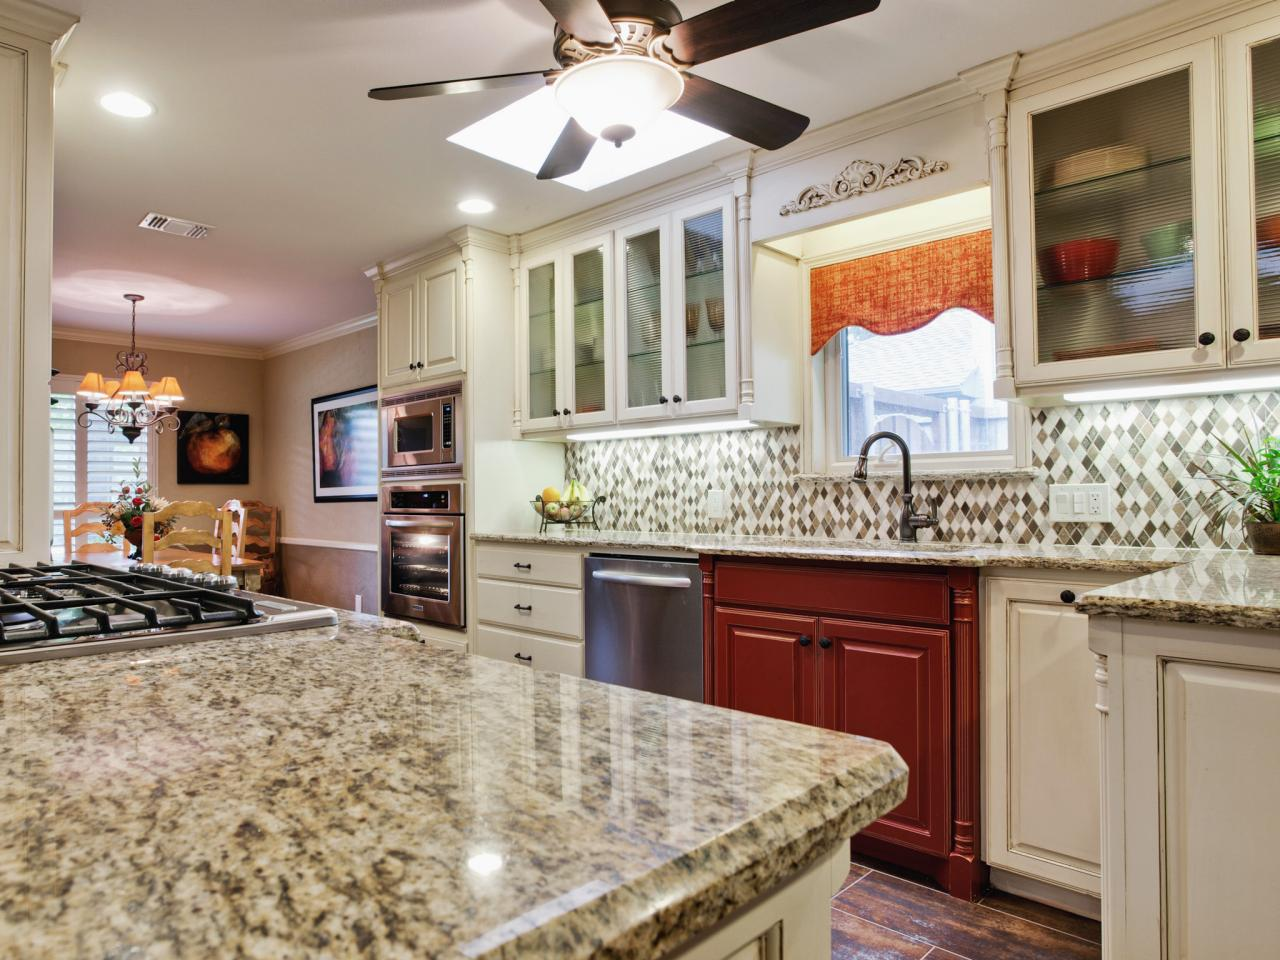 Backsplash ideas for granite countertops hgtv pictures hgtv - Backsplash ideas kitchen ...